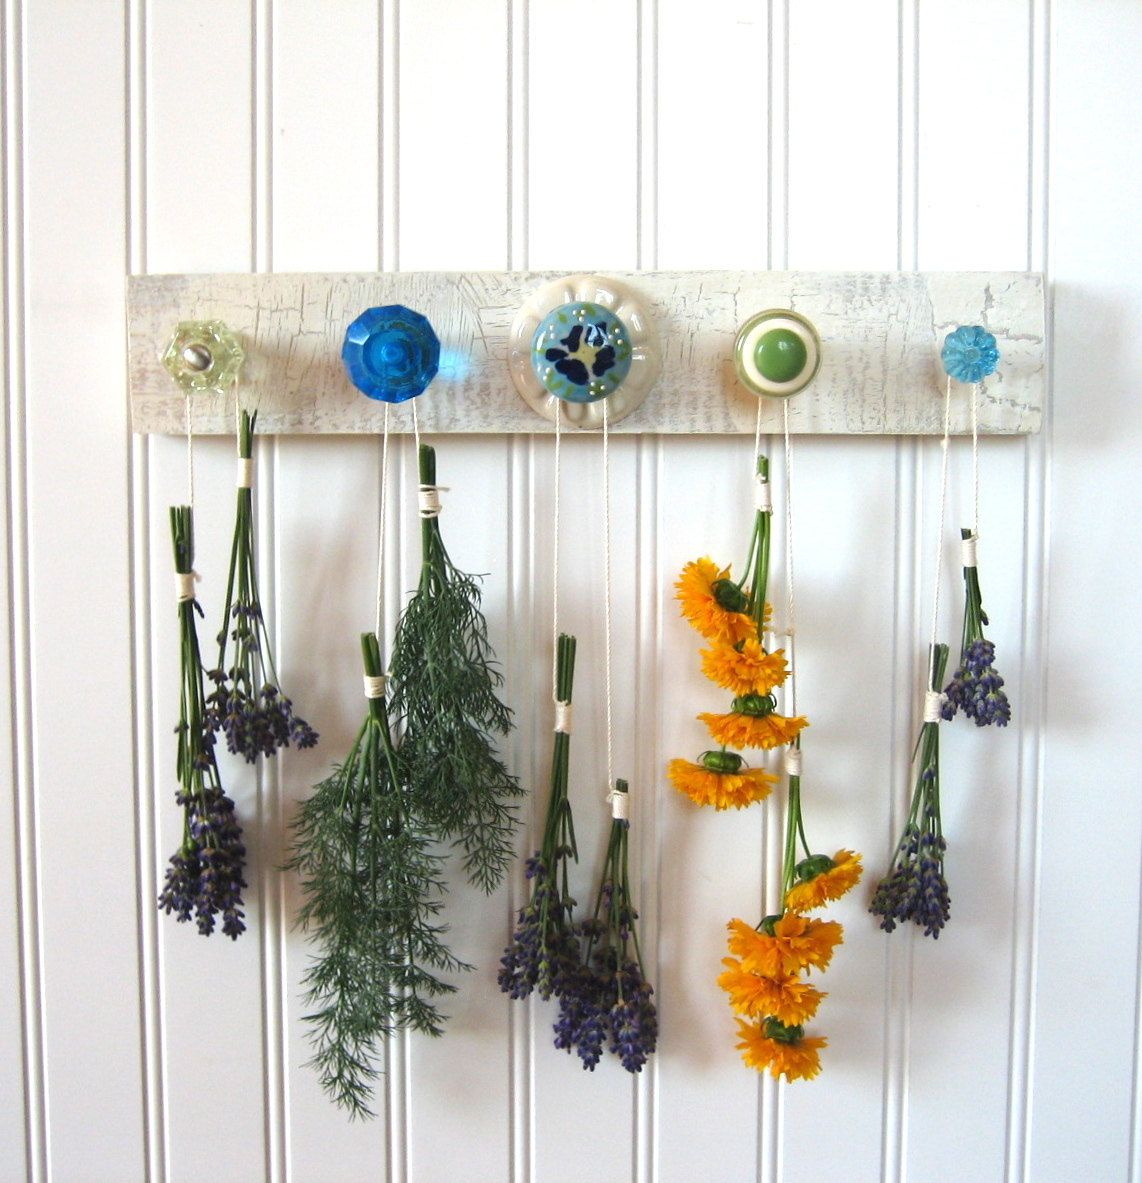 jewelry rack with green and blue deliciousnessaka herb etsy herb drying racks hanging herbs drying herbs pinterest